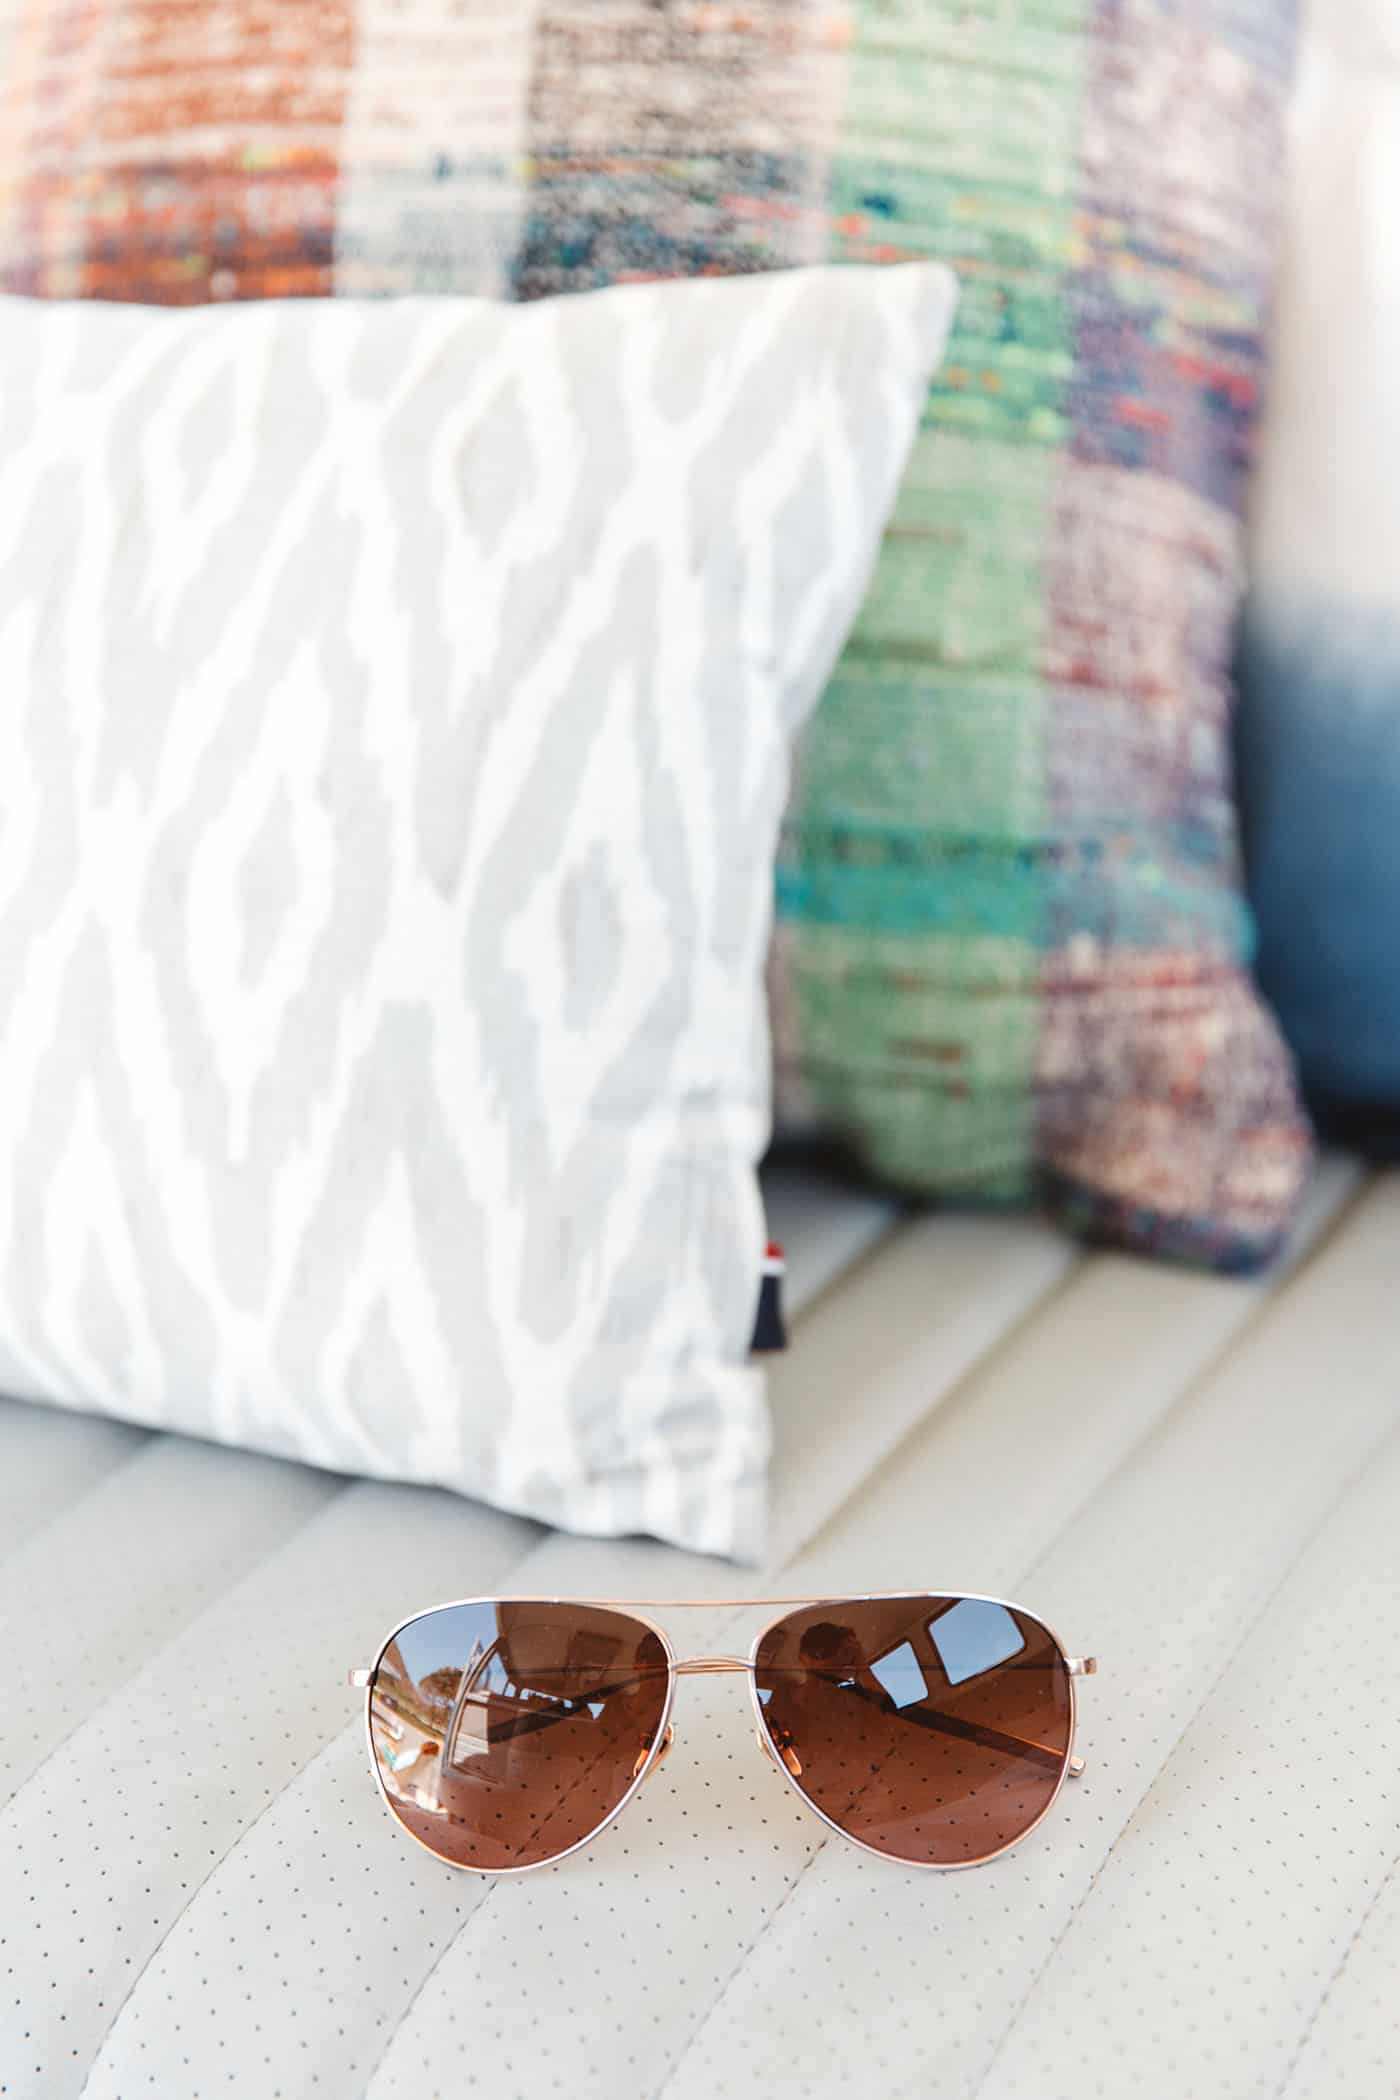 Tiffani Thiessen's Favorite Things July 2016 • Salt Optics sunglasses • Photography by Brandon Kidd